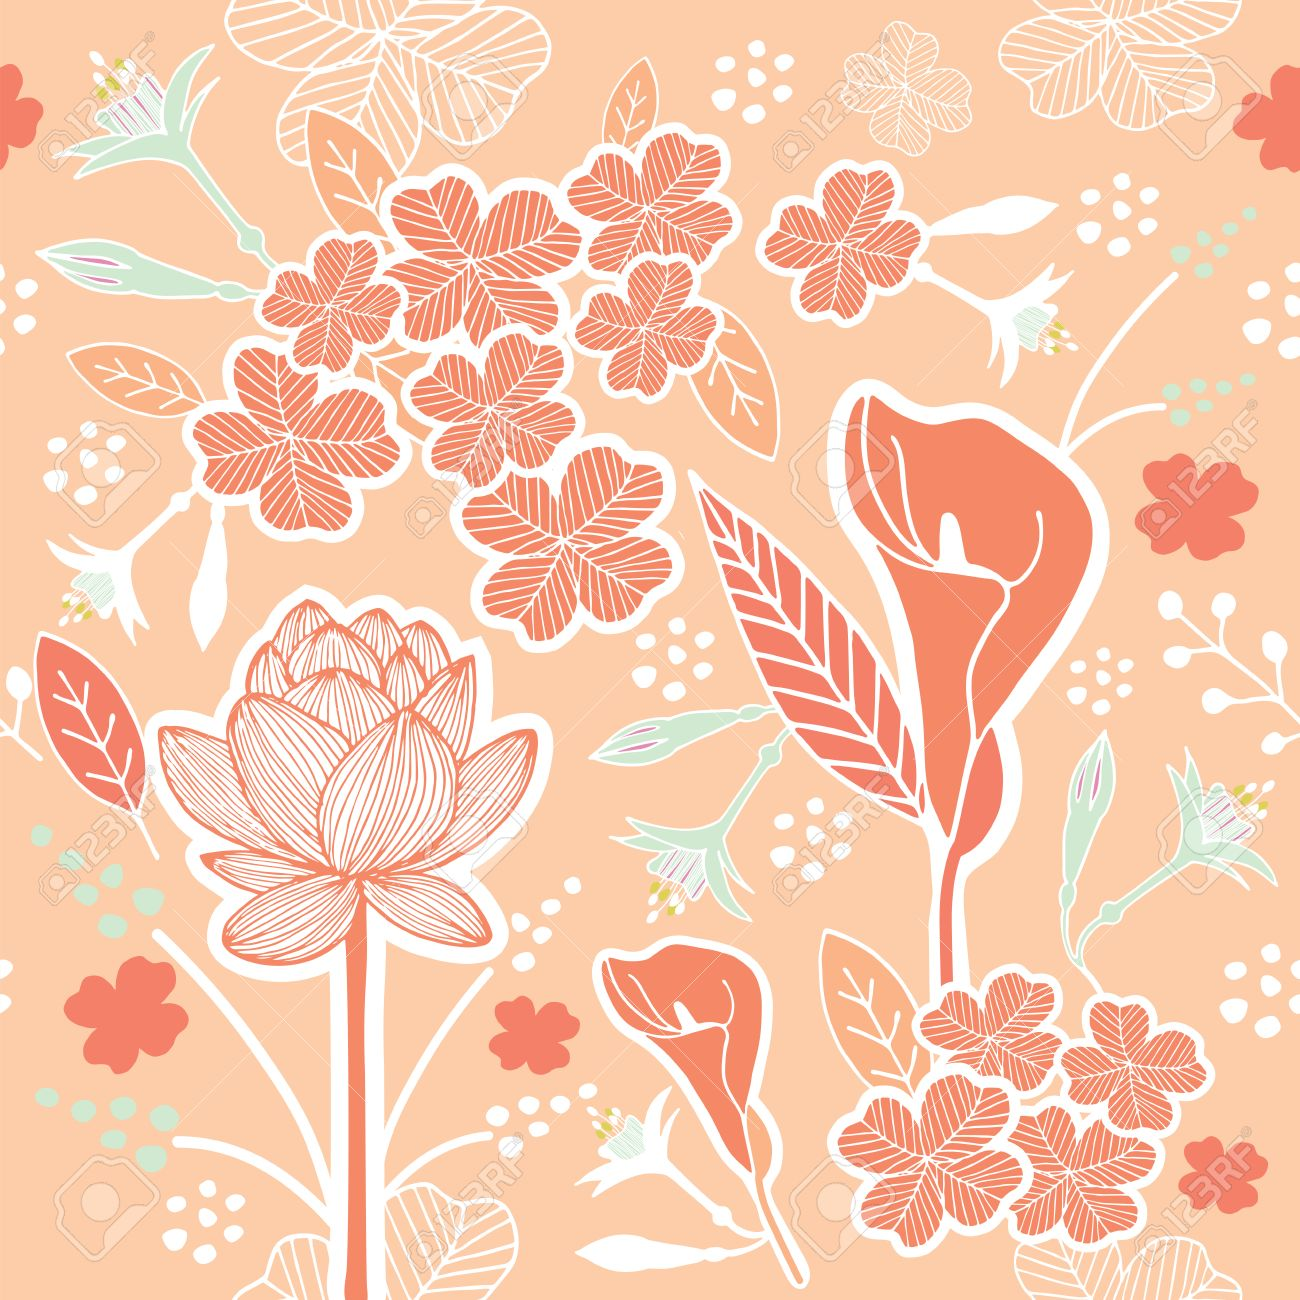 Flower or Floral and leaf pattern seamless fabric vector pastel color scheme on pastel peach background